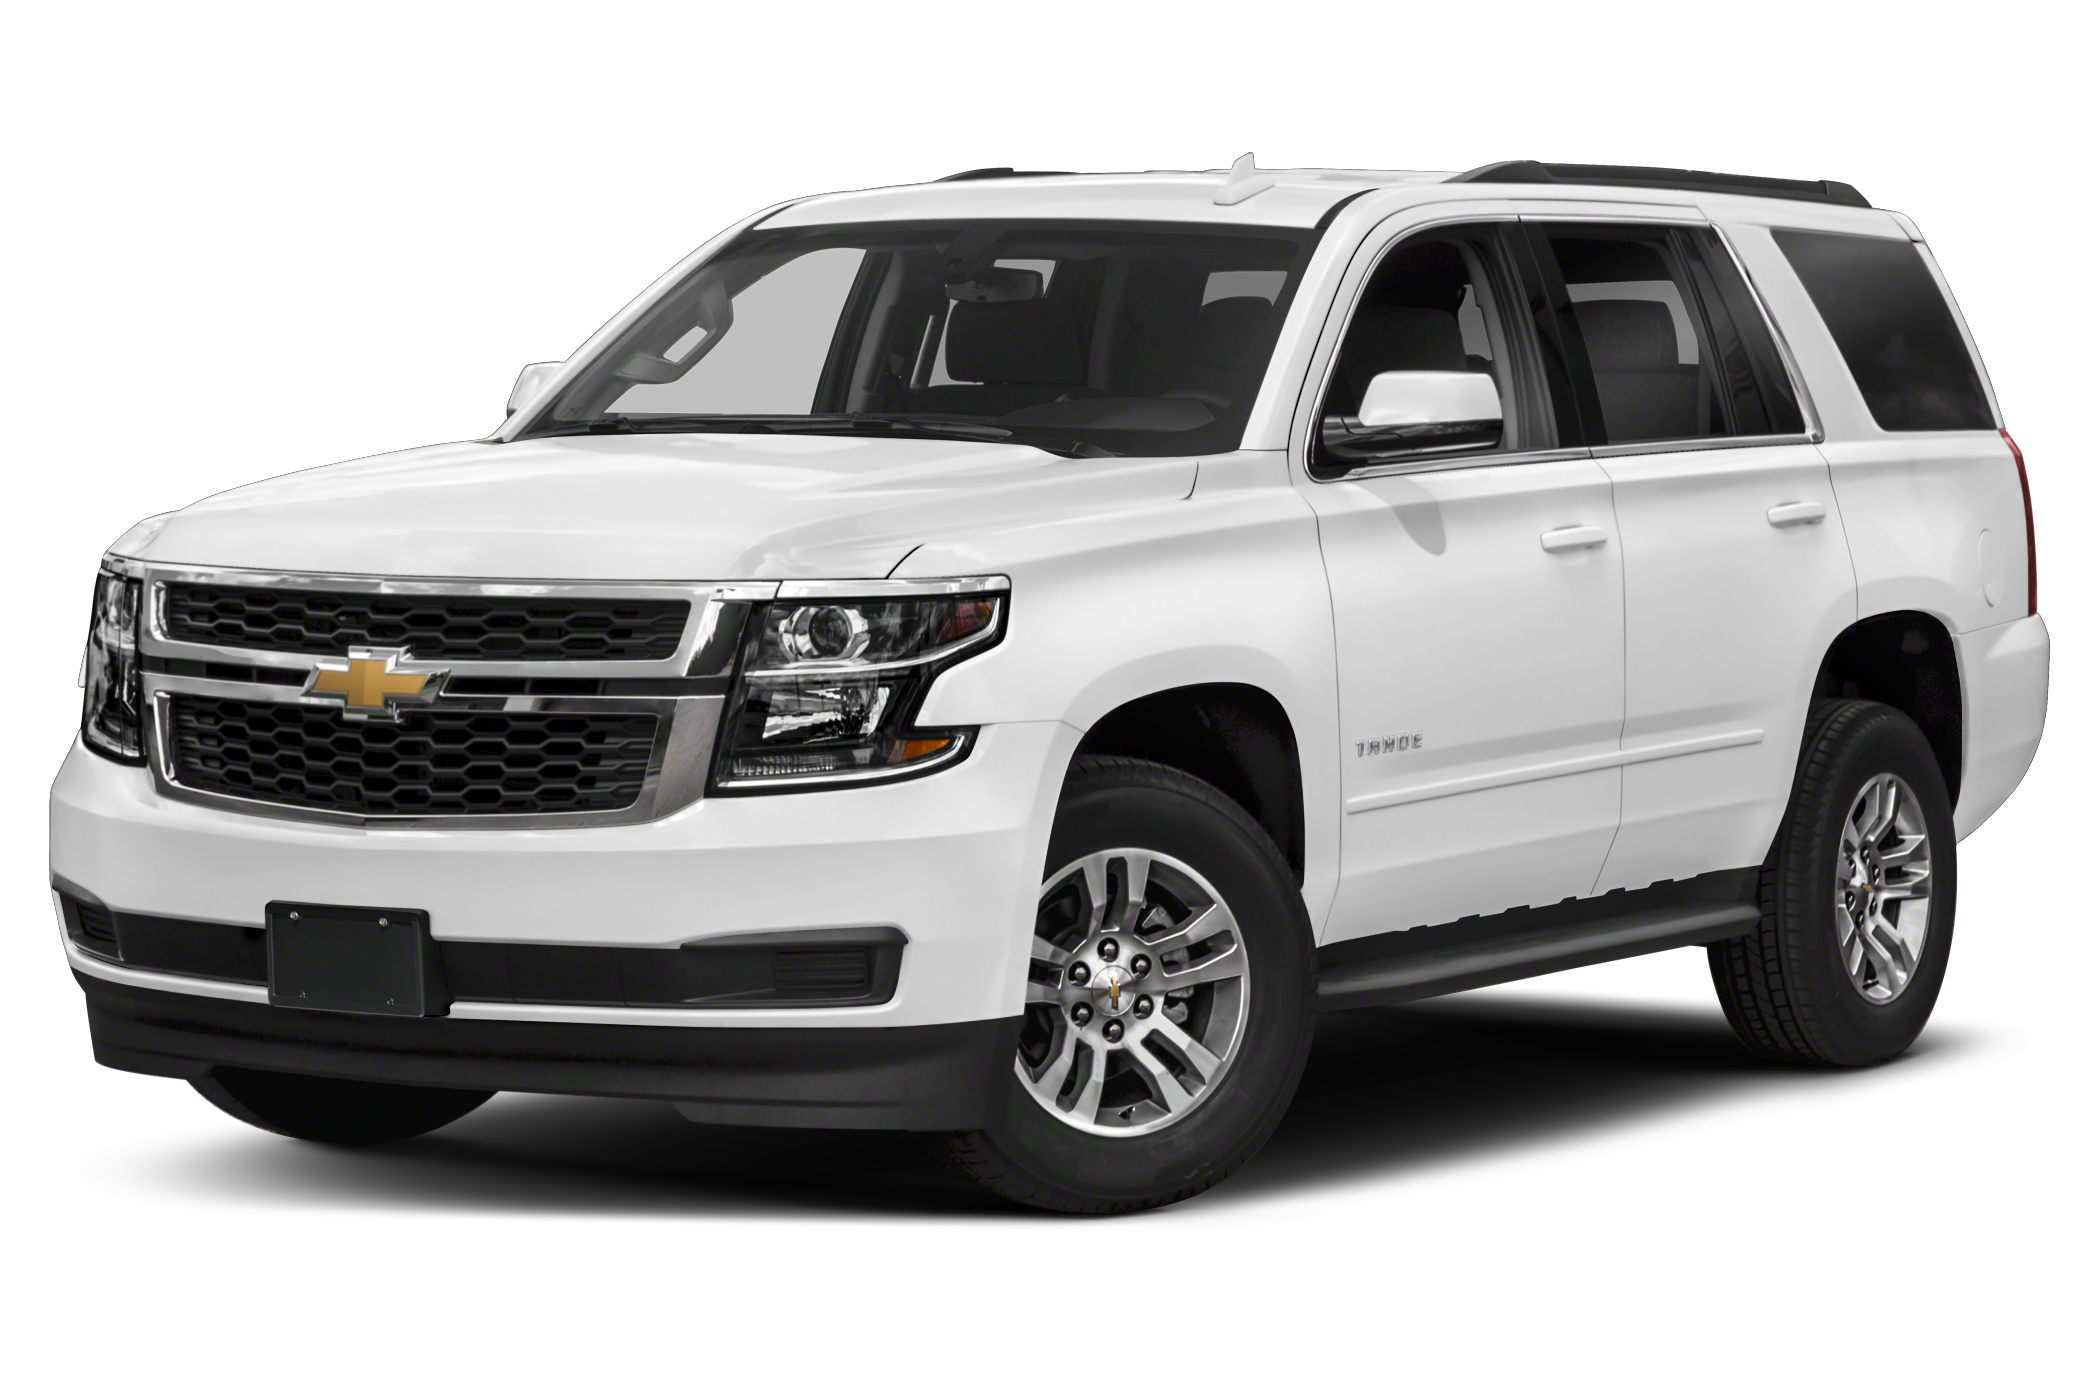 32 Best Review 2020 Chevy Tahoe Z71 Ss Concept for 2020 Chevy Tahoe Z71 Ss